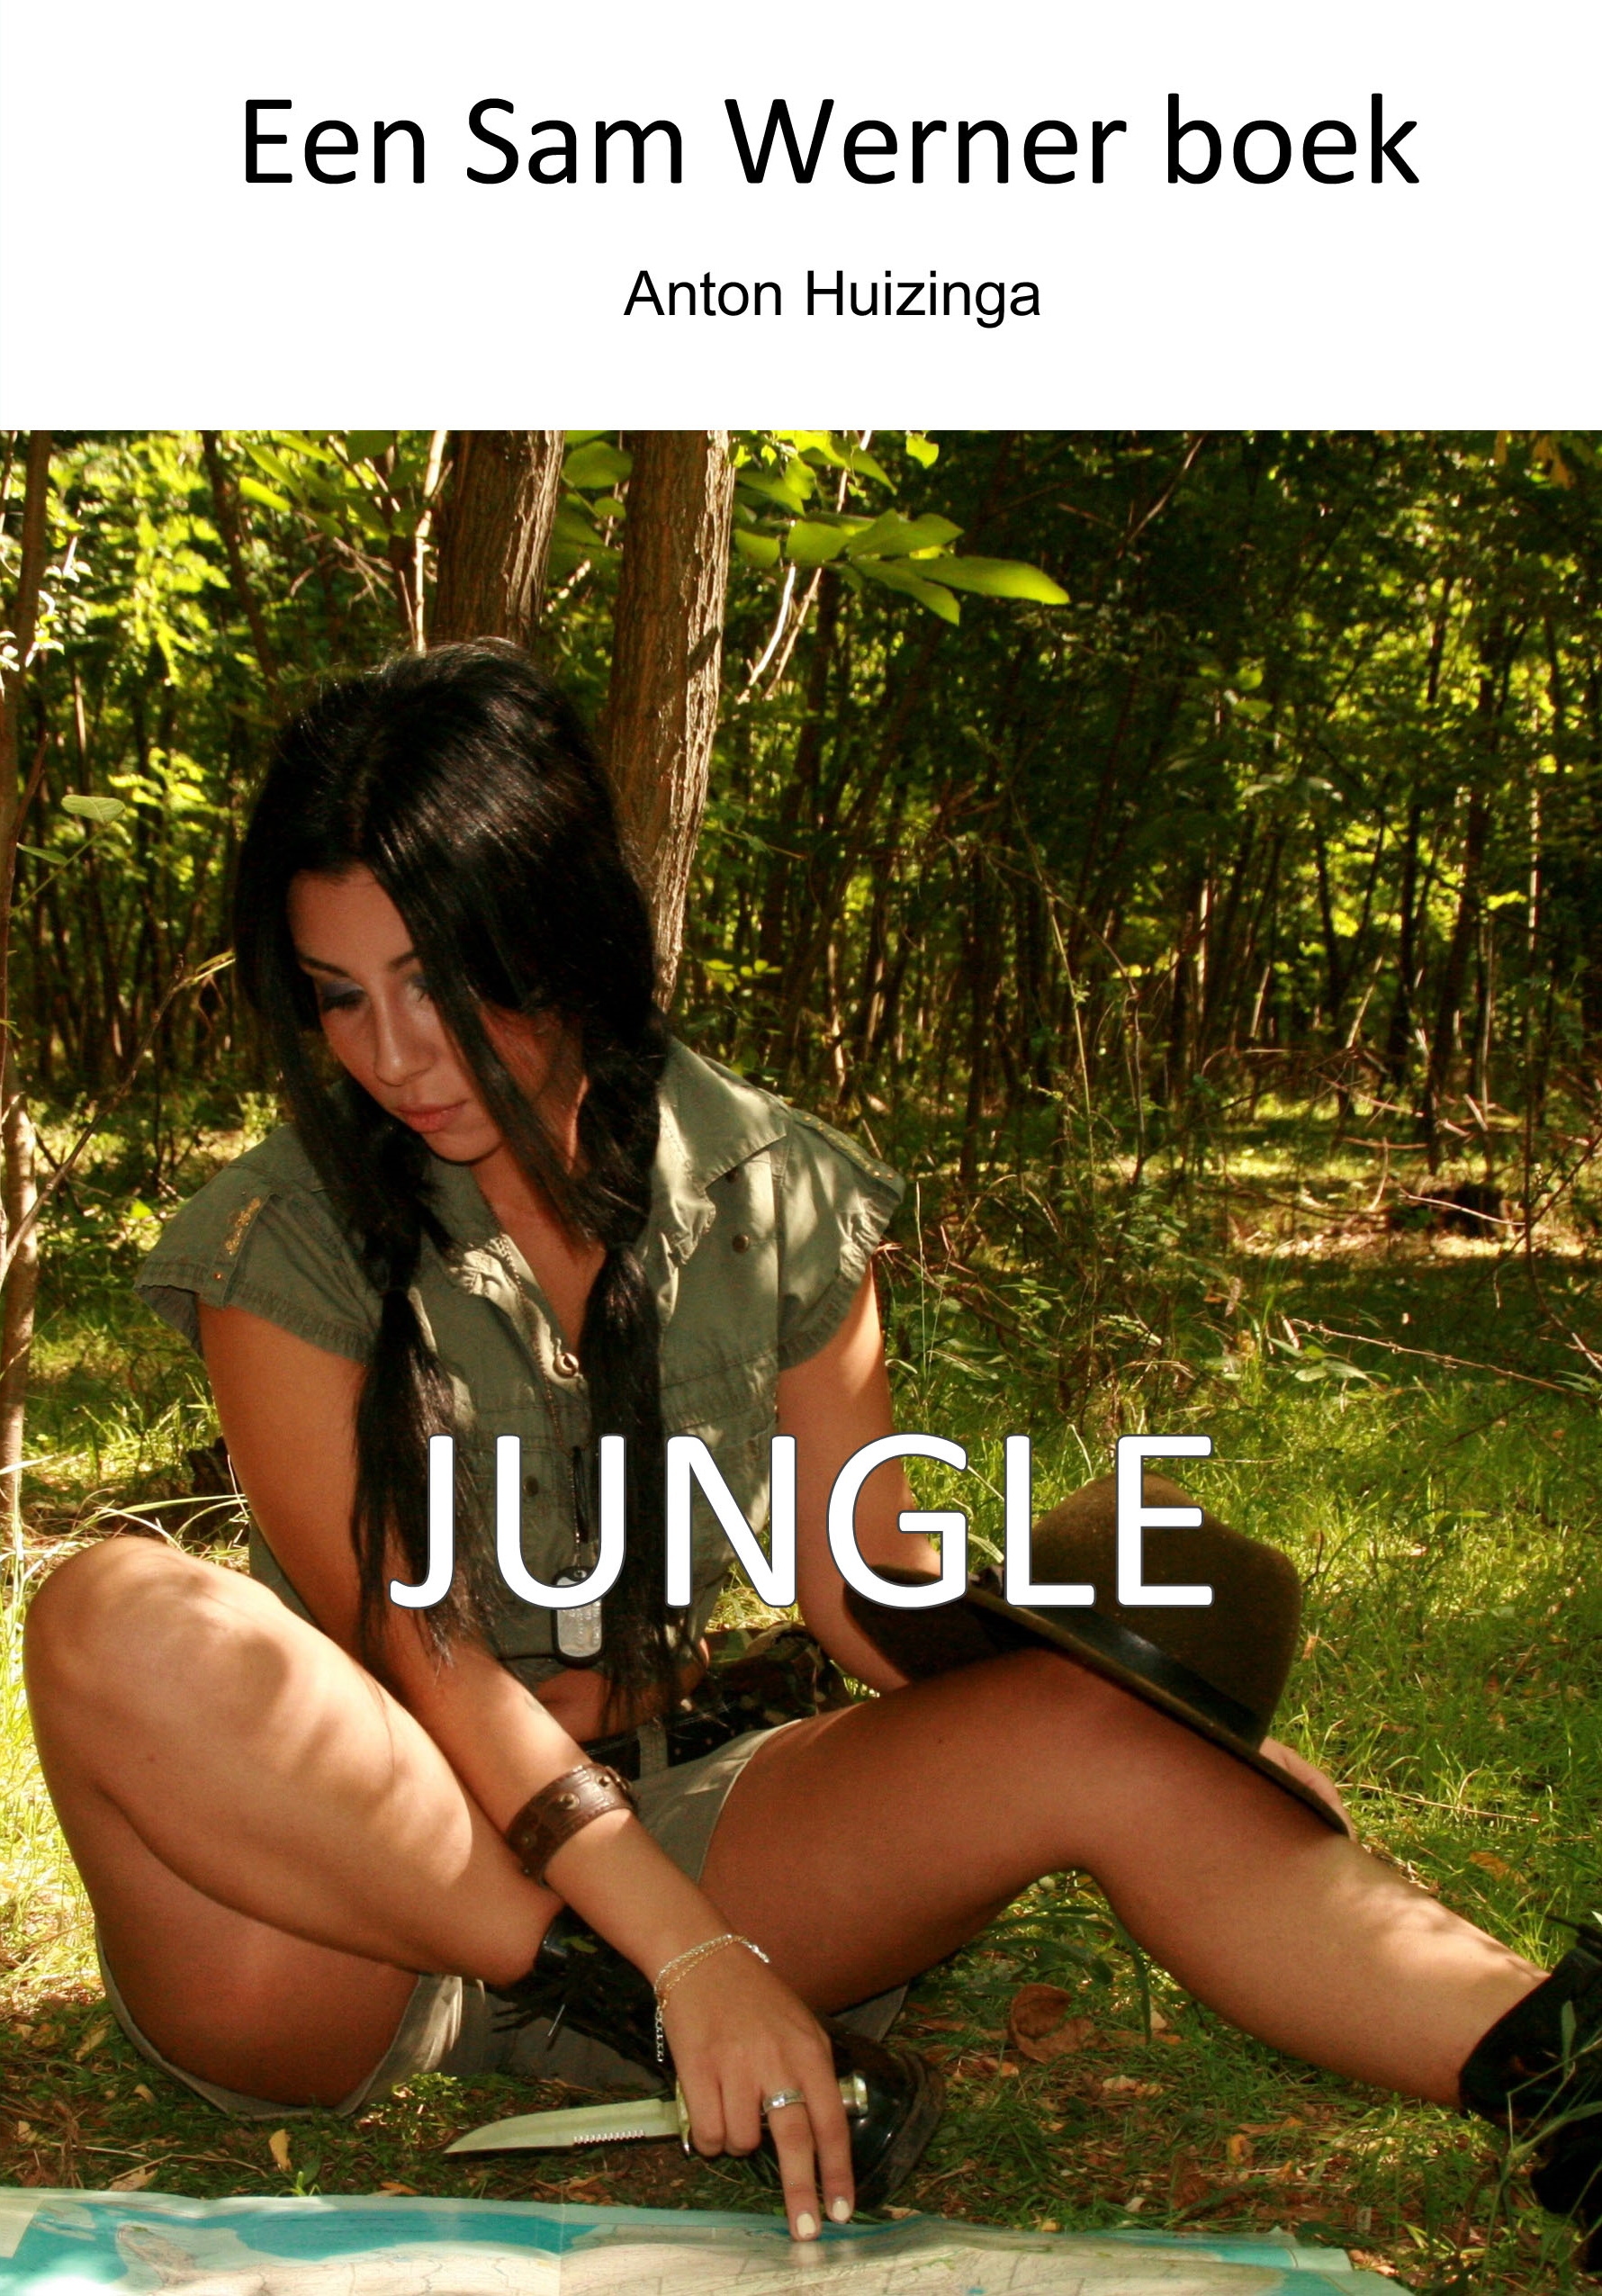 //www.huiz.net/wp-content/uploads/2019/09/omslag-jungle-ebook-1.jpg